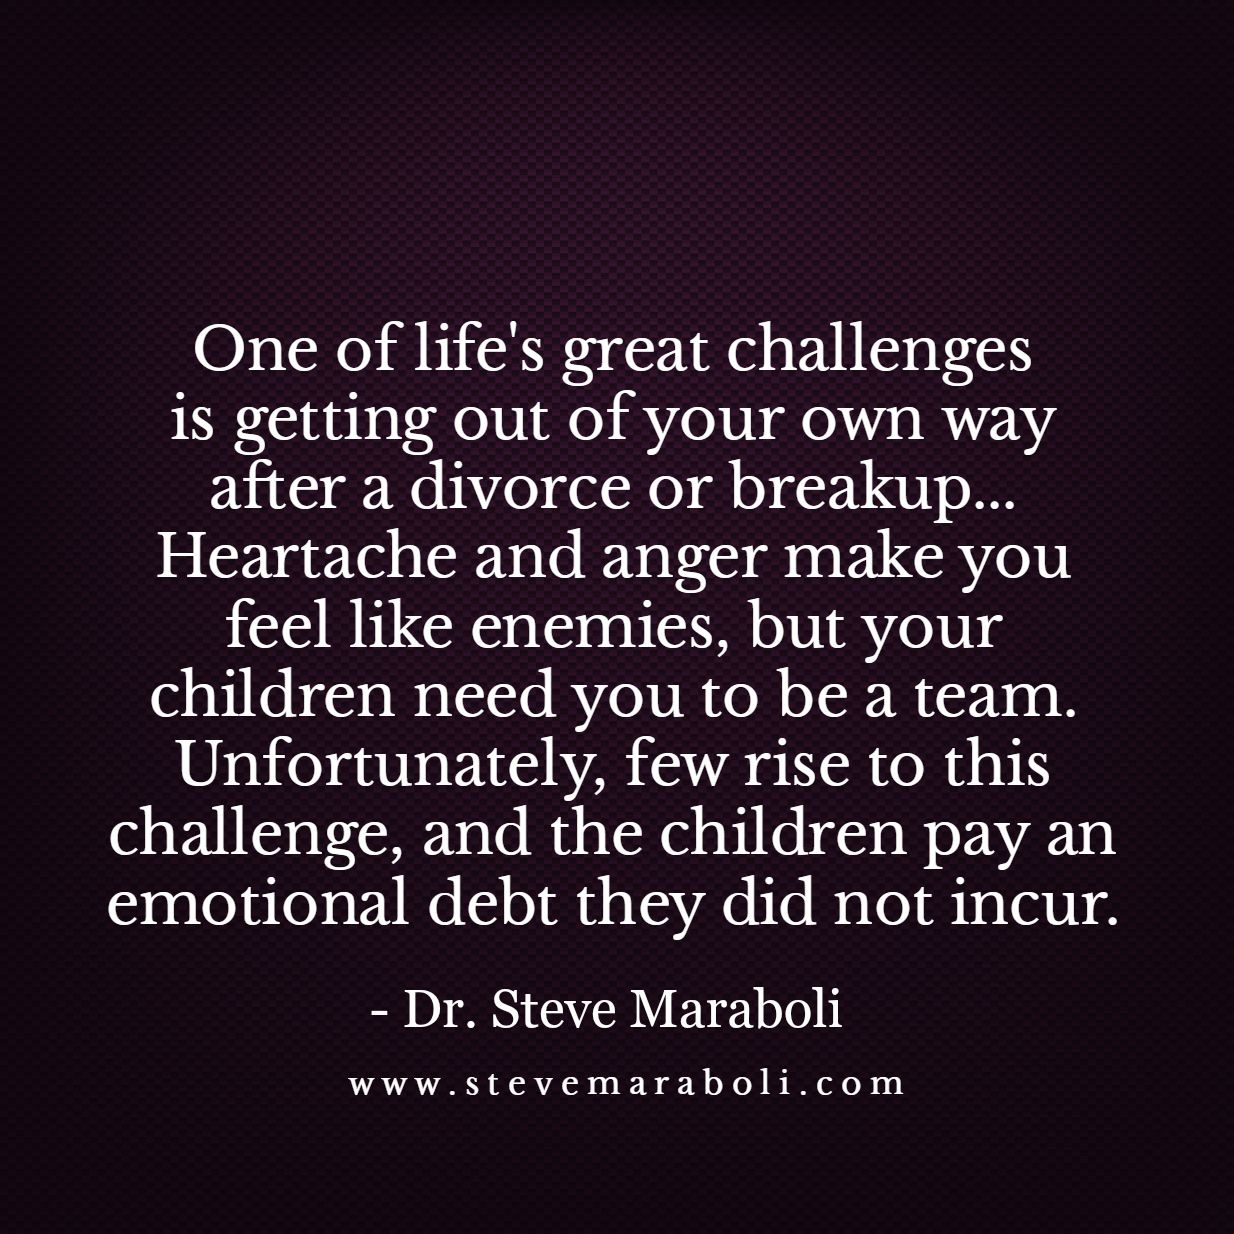 Life After Divorce Quotes One Of Life's Great Challenges Is Getting Out Of Your Own Way